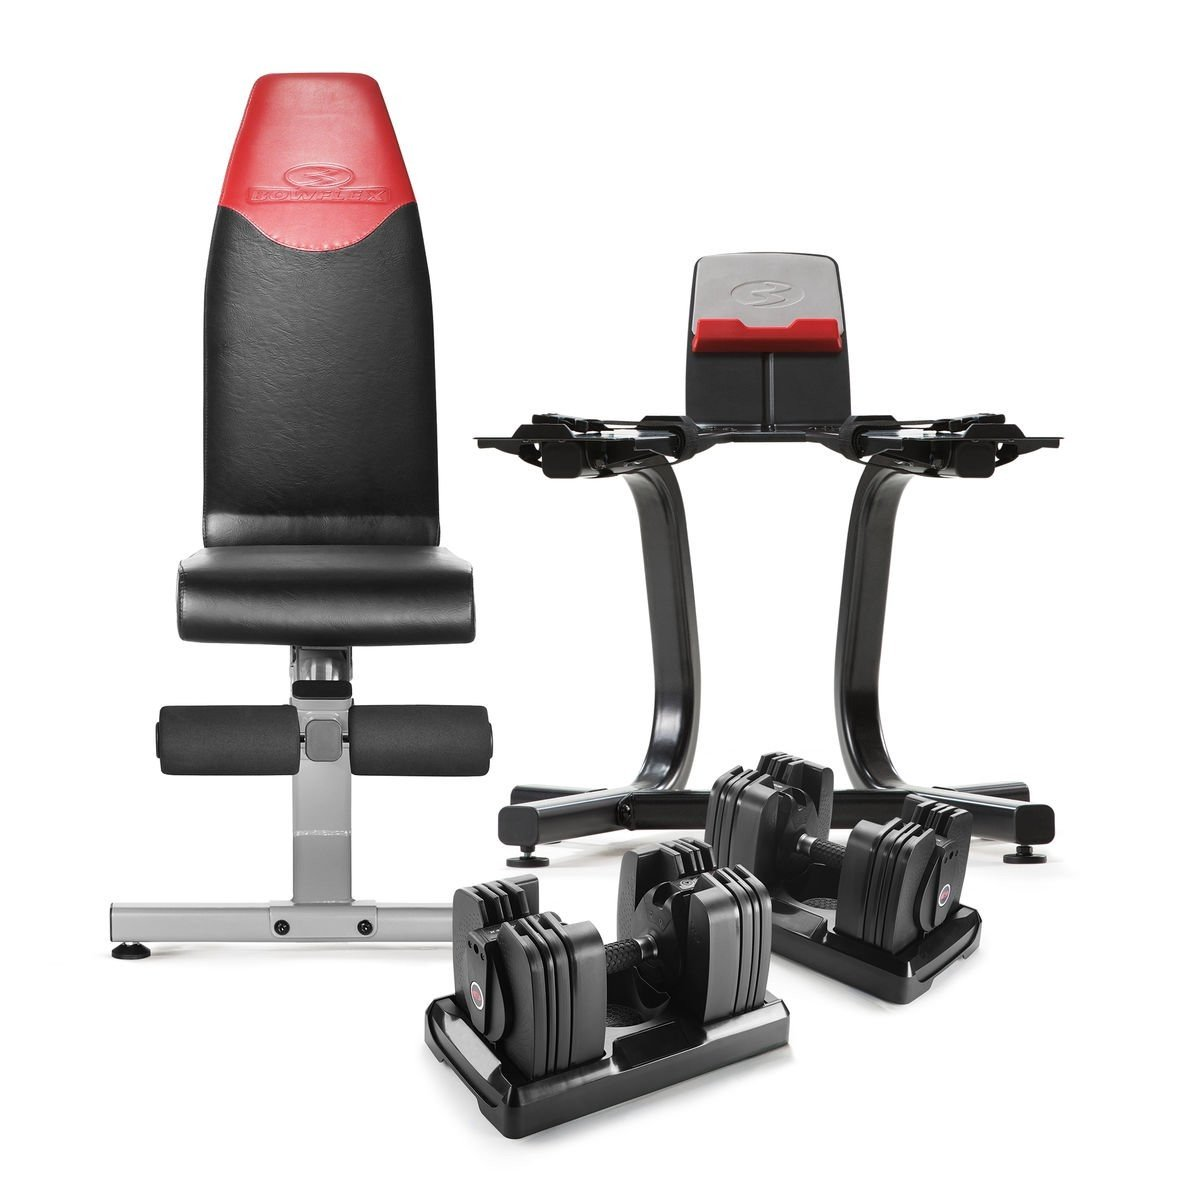 Bowflex Selecttech 560 Dumbbells, 4.1 Bench, and Stand for $599